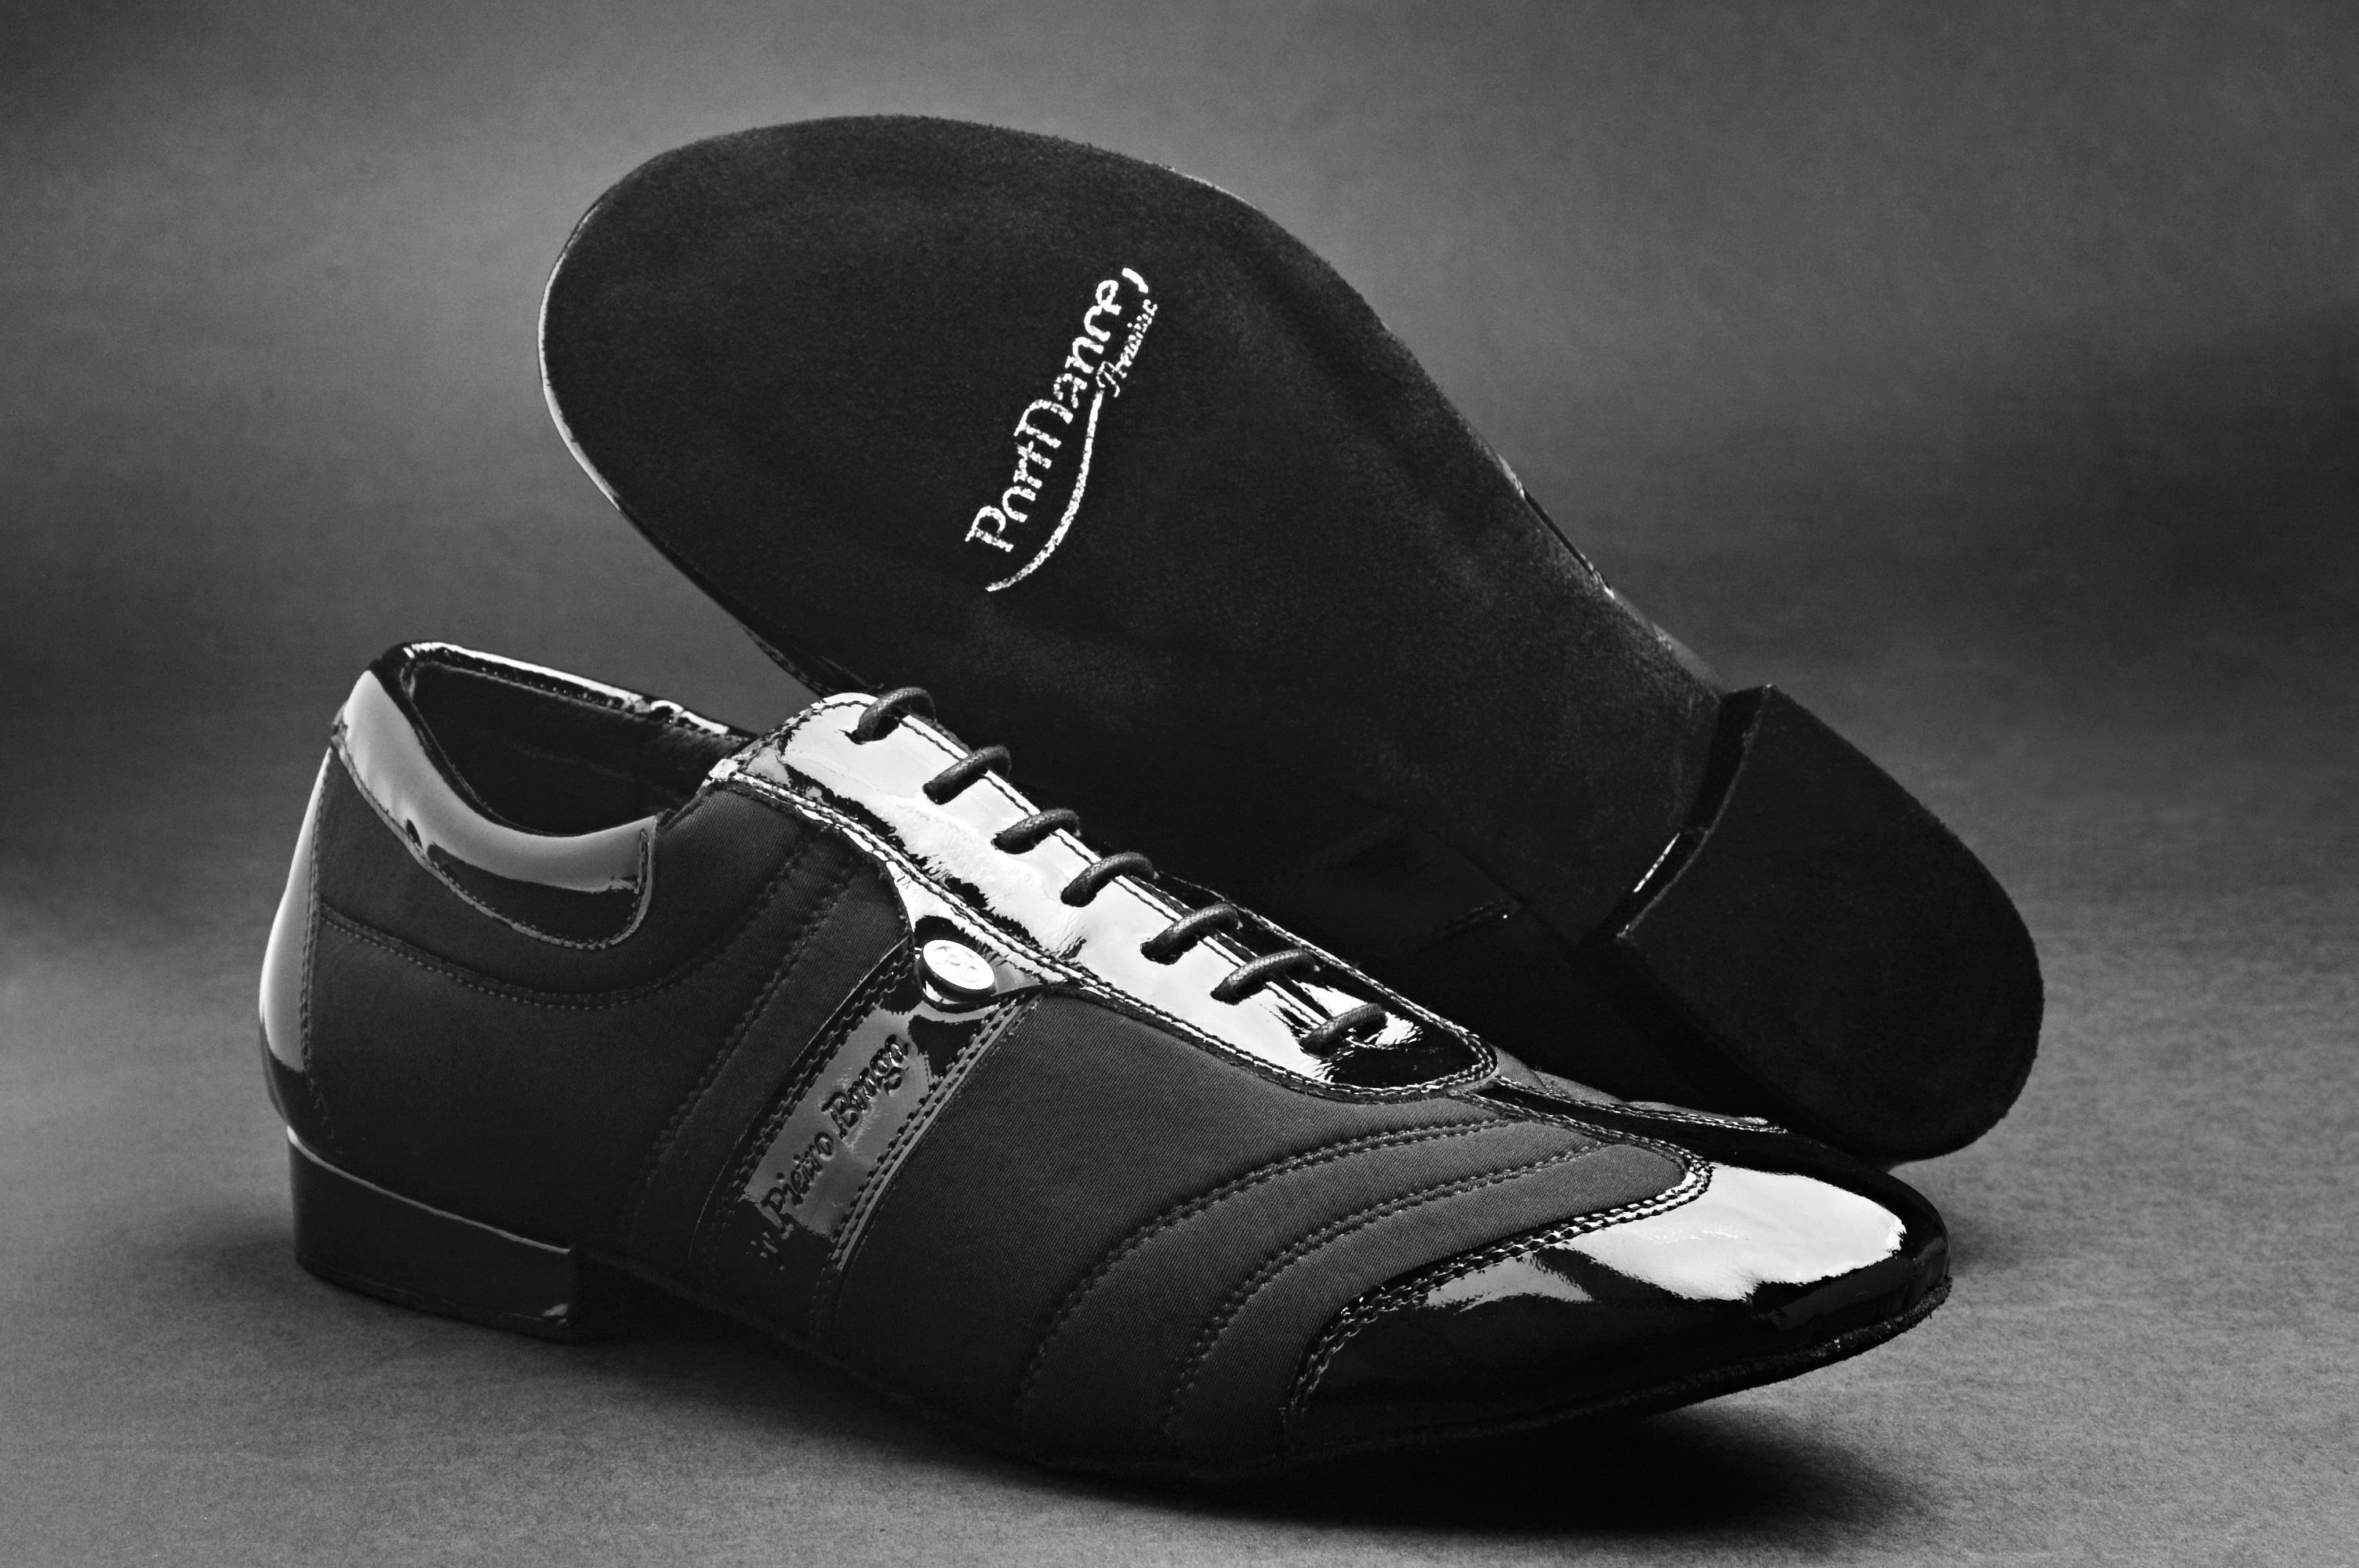 Mens Dance Shoes - Grouchy Me Planet